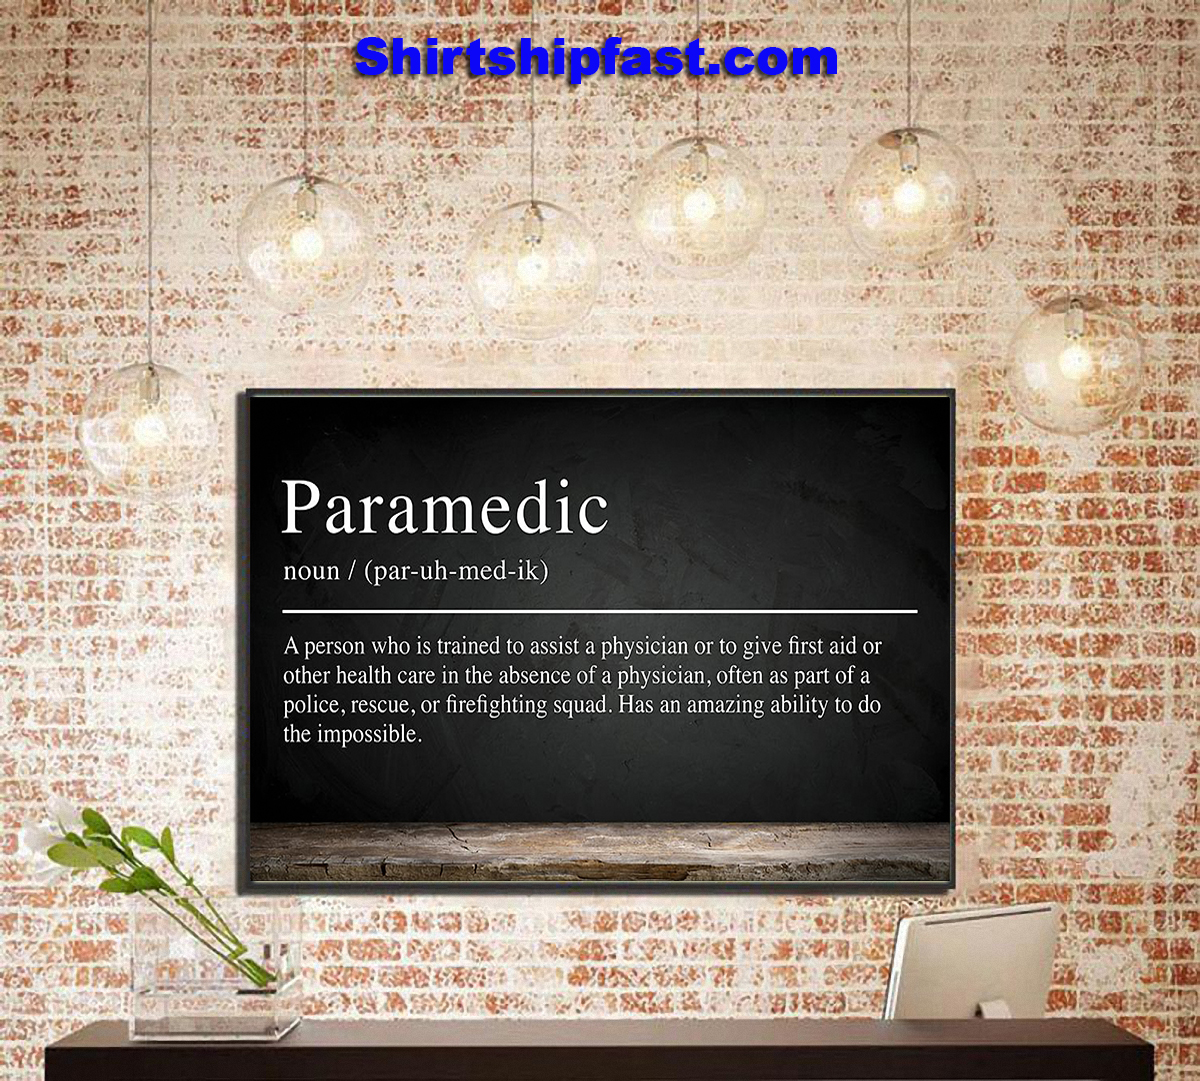 Paramedic definition poster - Picture 3